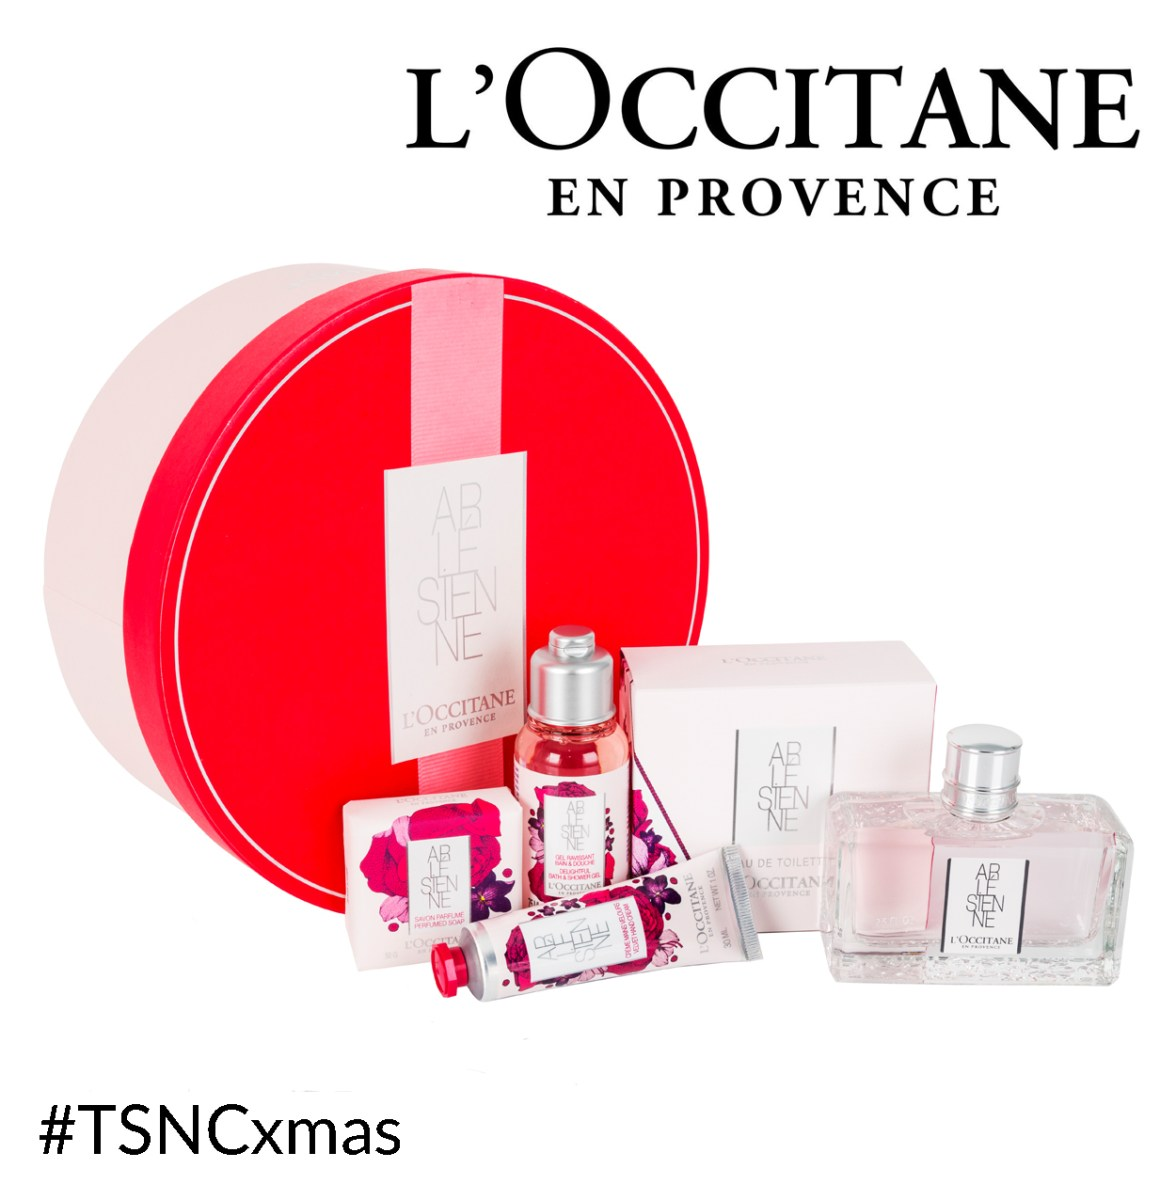 TSNC Advent Giveaway: L'Occitane Gift Set! #TSNCxmas